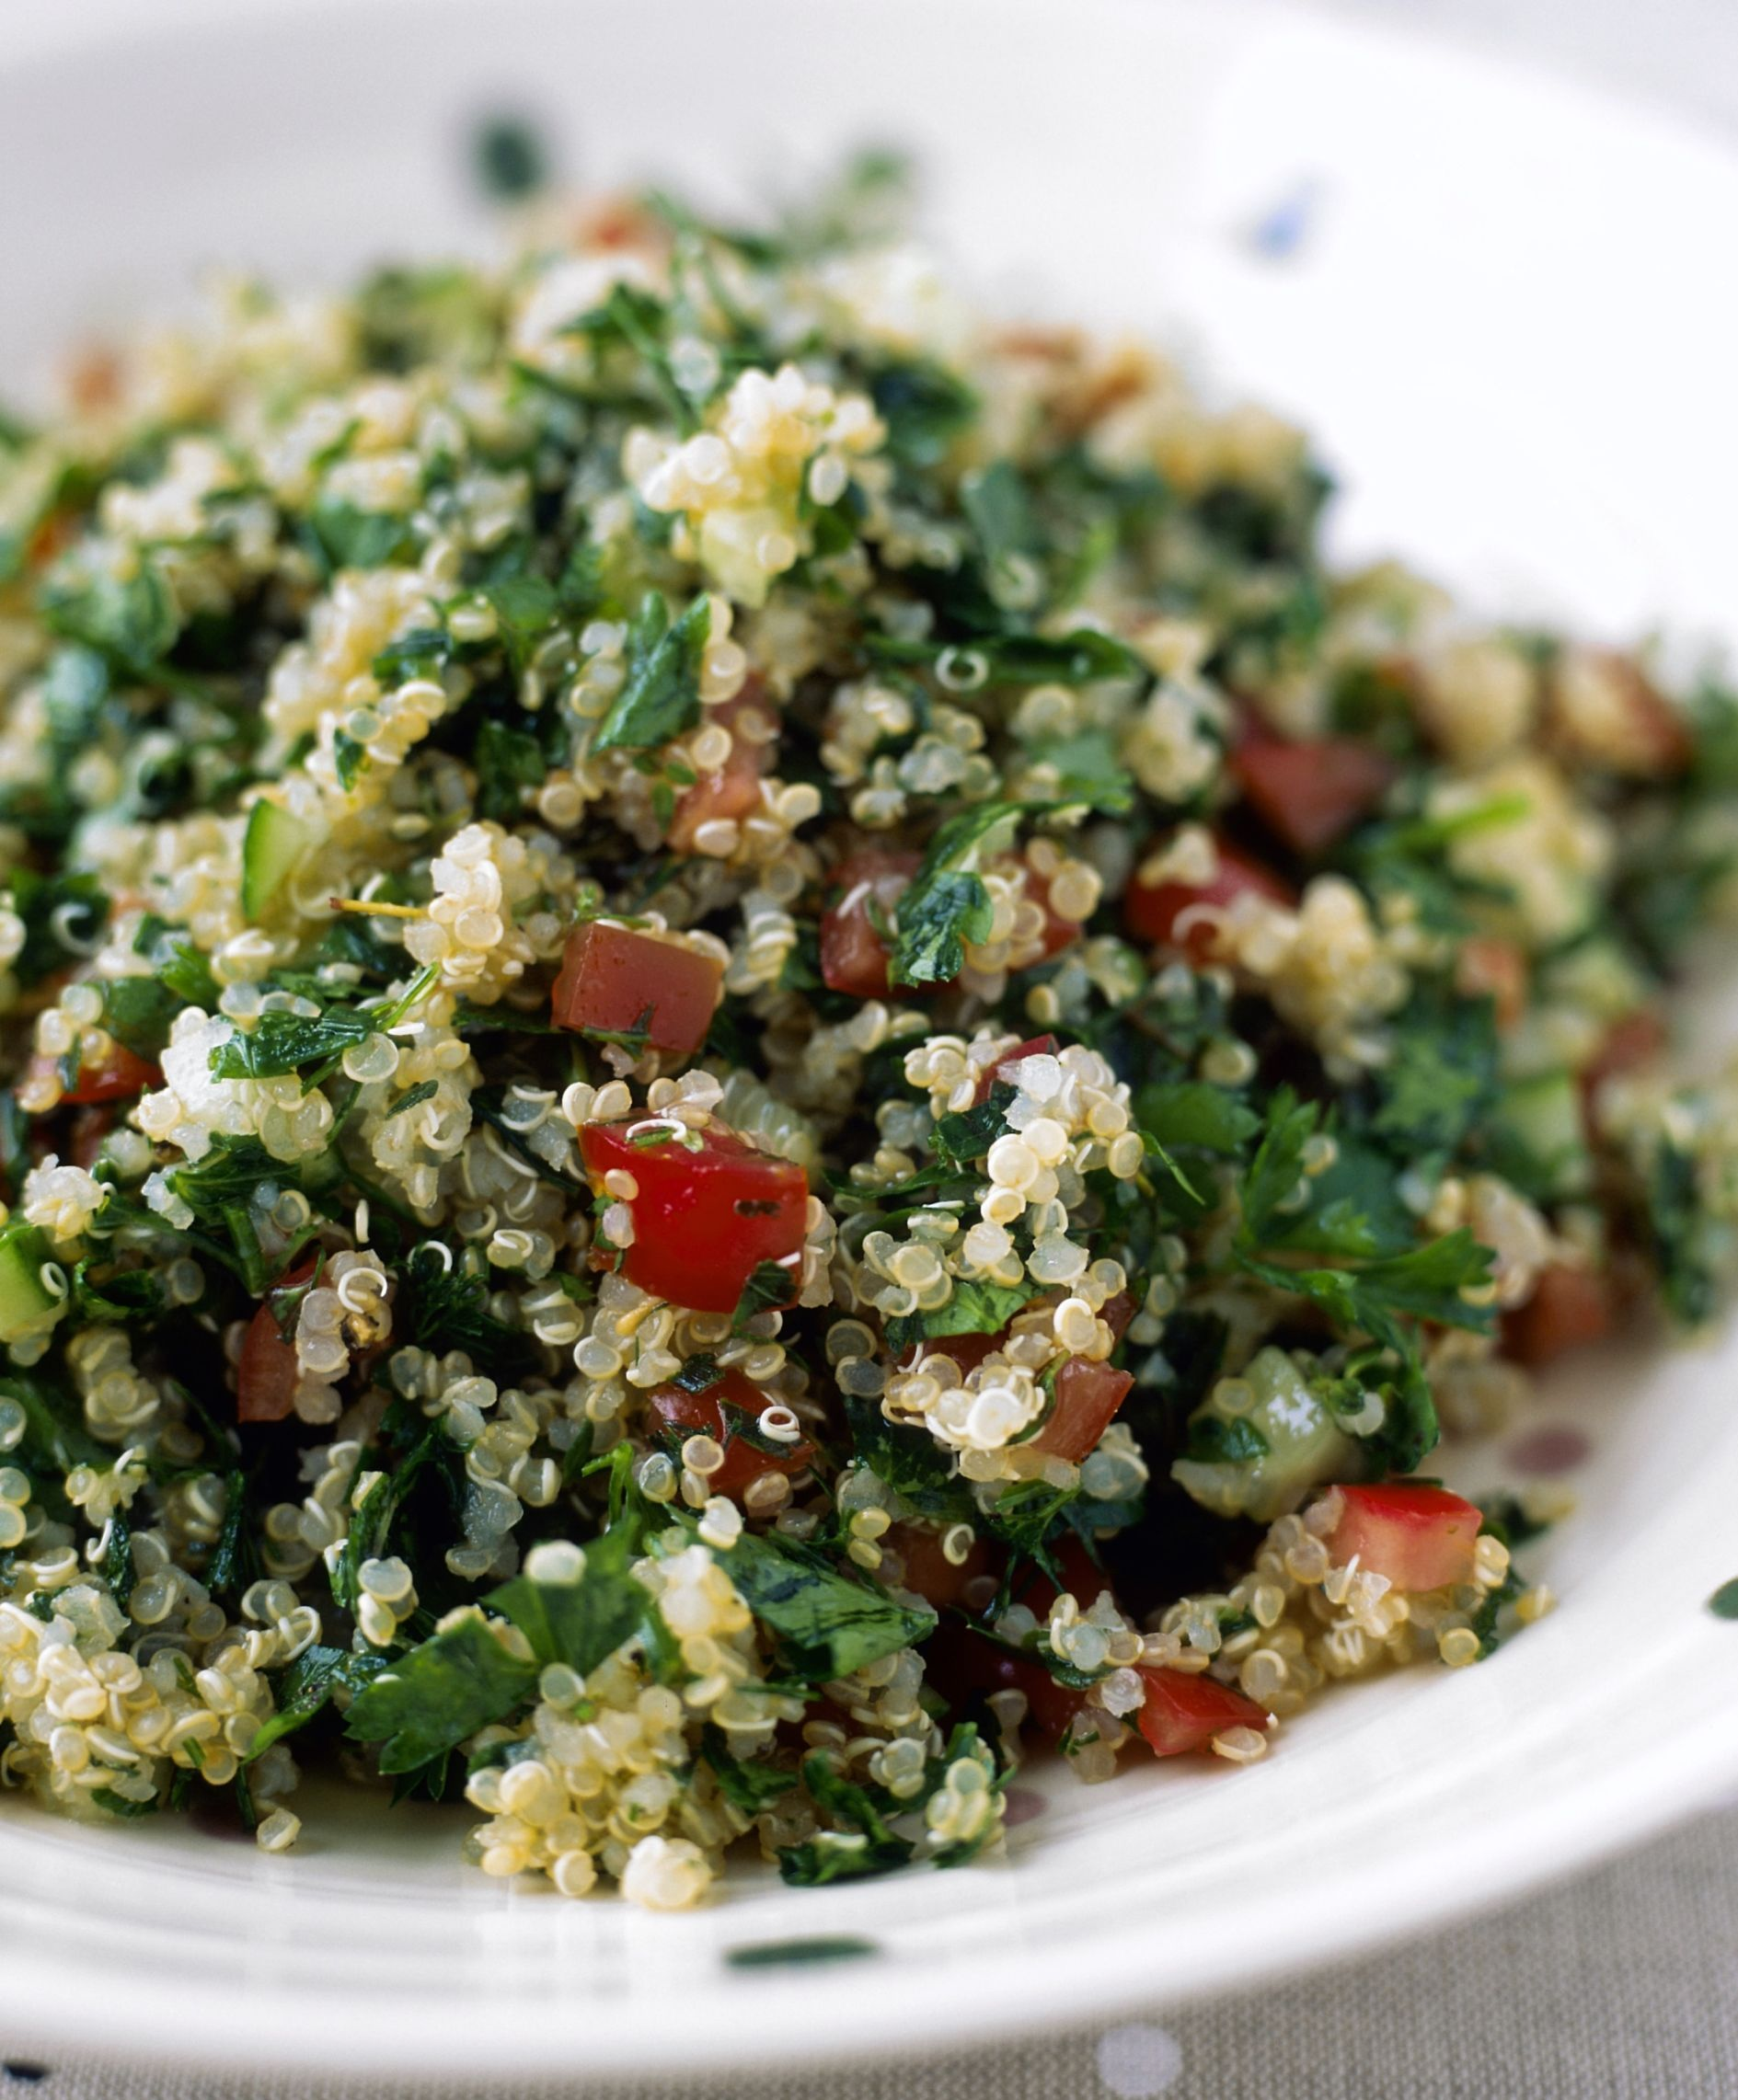 A vegetarian tabbouleh (also spelled tabouleh or tabouli) salad, made with healthy, whole grain and high-protein quinoa. It's really a two-in-one: you get a quinoa salad as well as a traditional Middle Eastern tabbouleh, and it's vegetarian, vegan, and gluten-free.